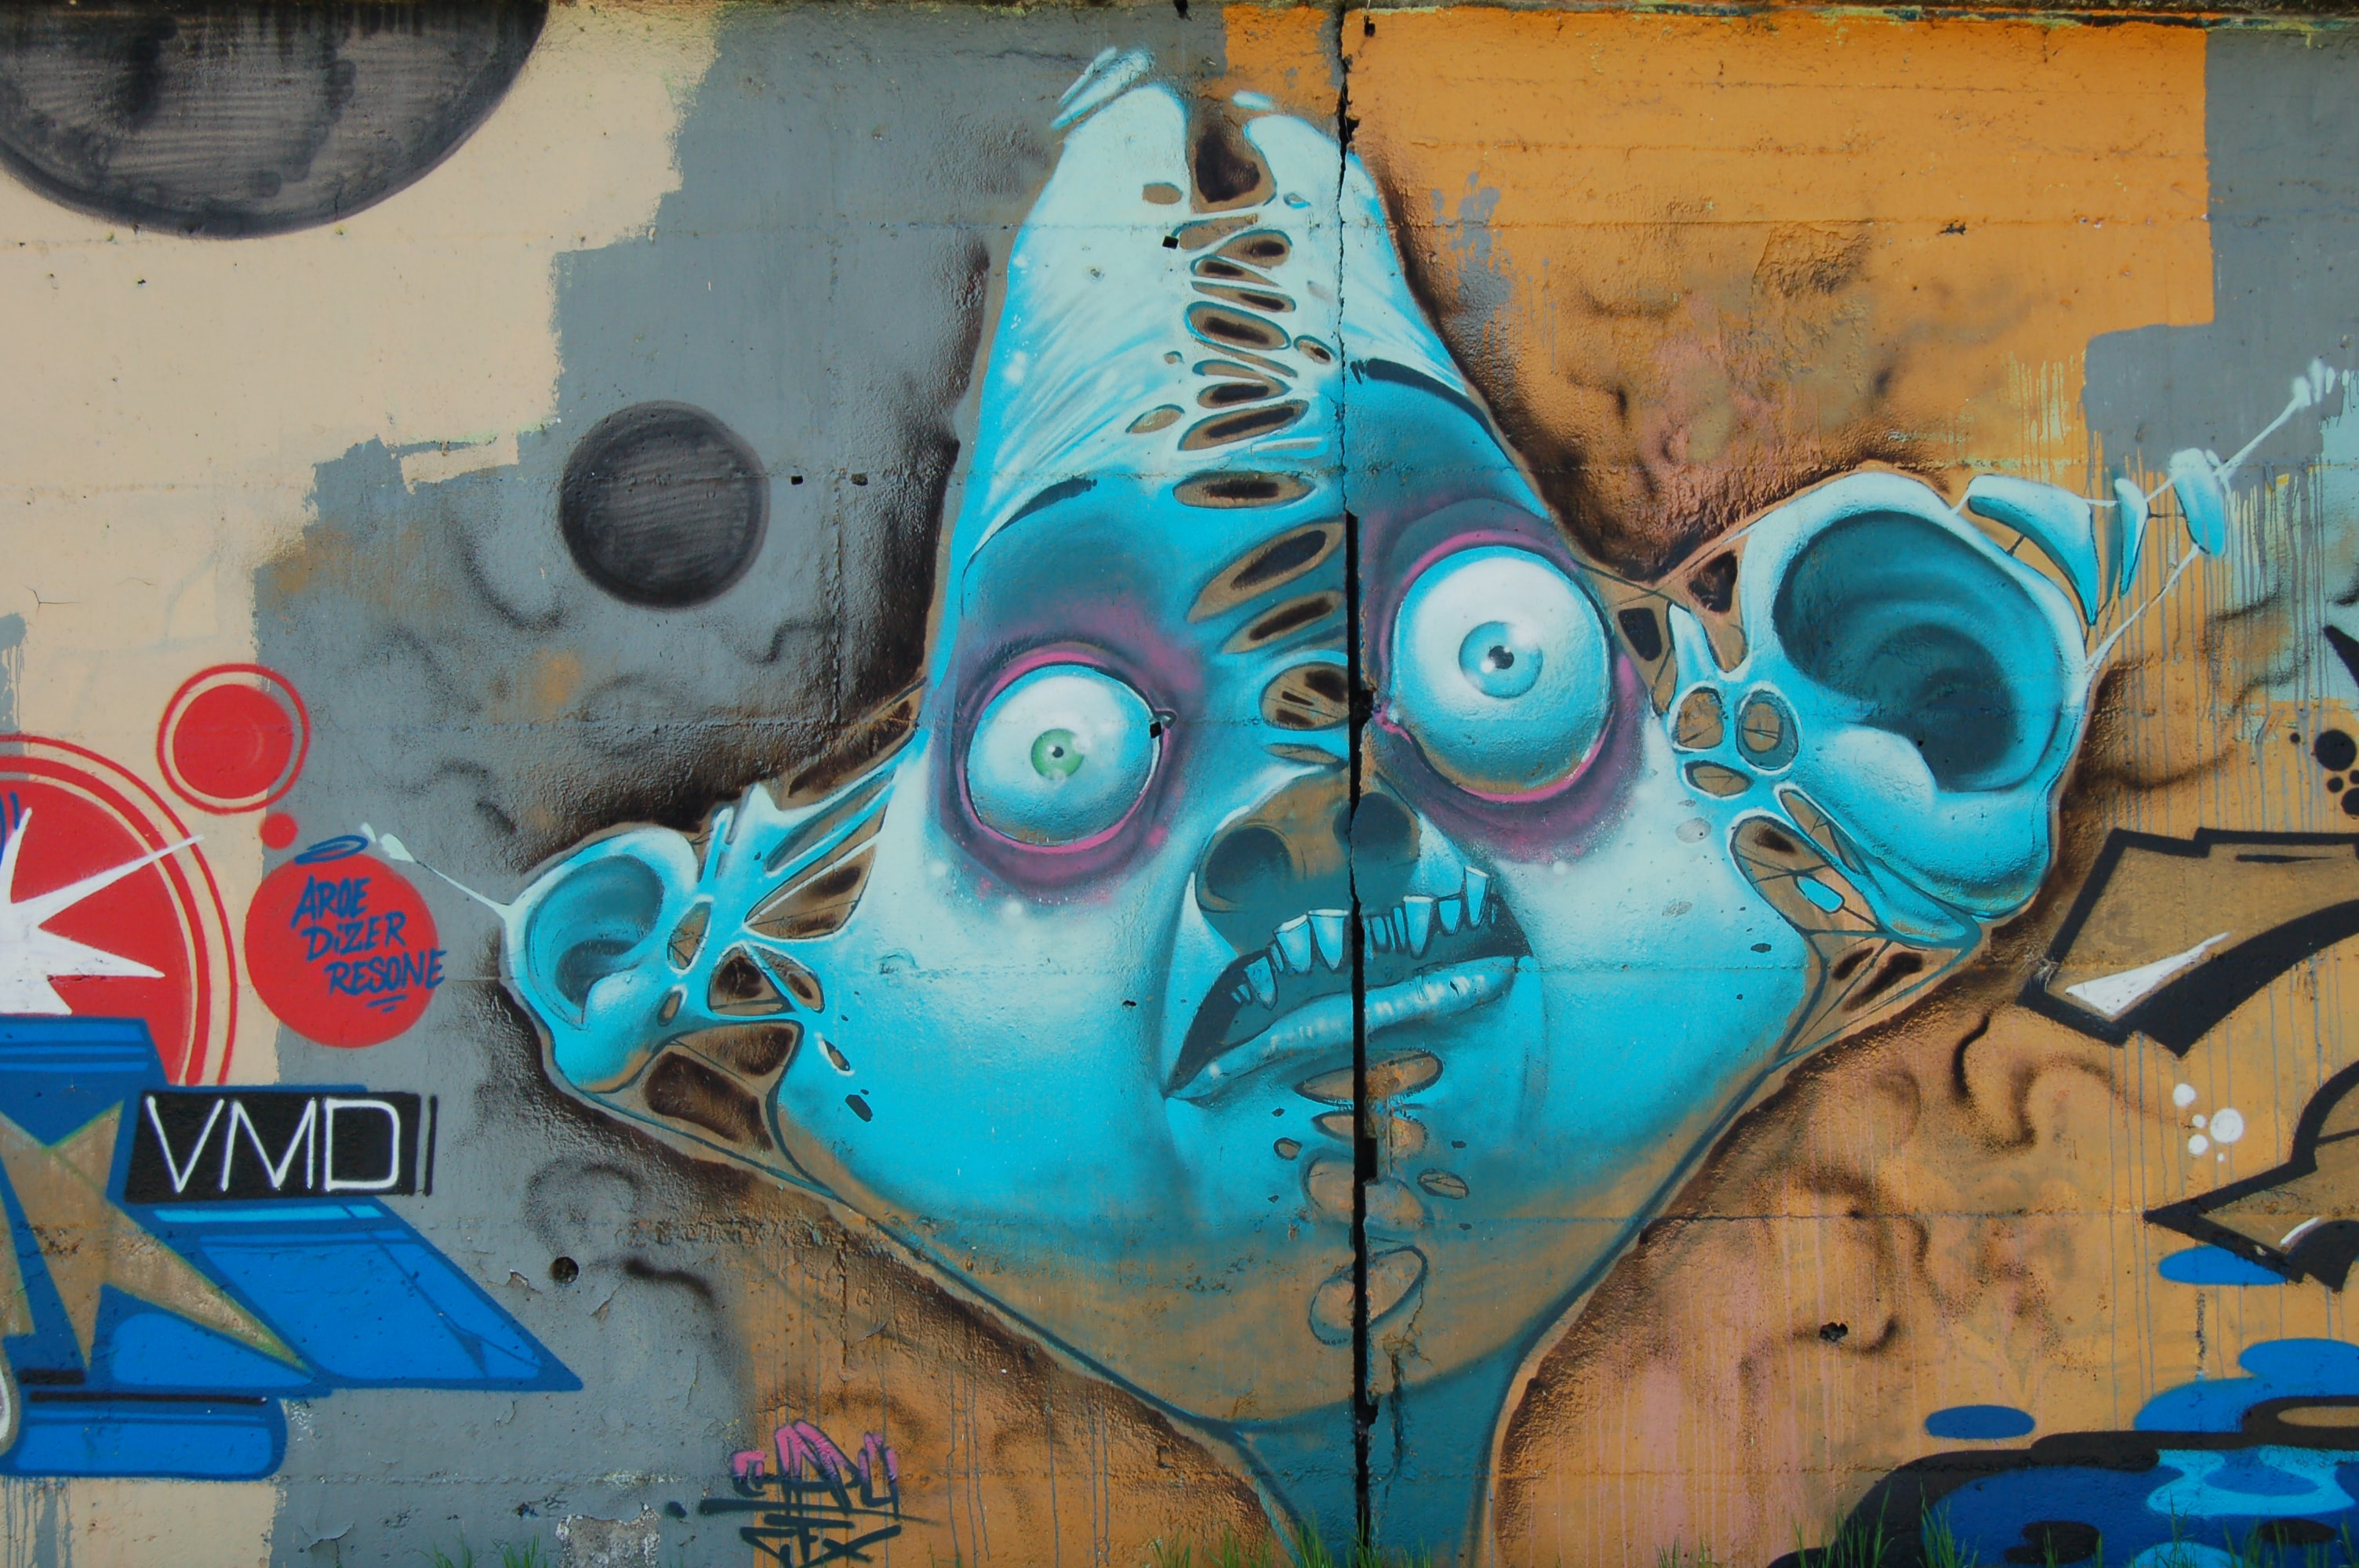 A funny looking monster character drawn with spray paint on a building wall.